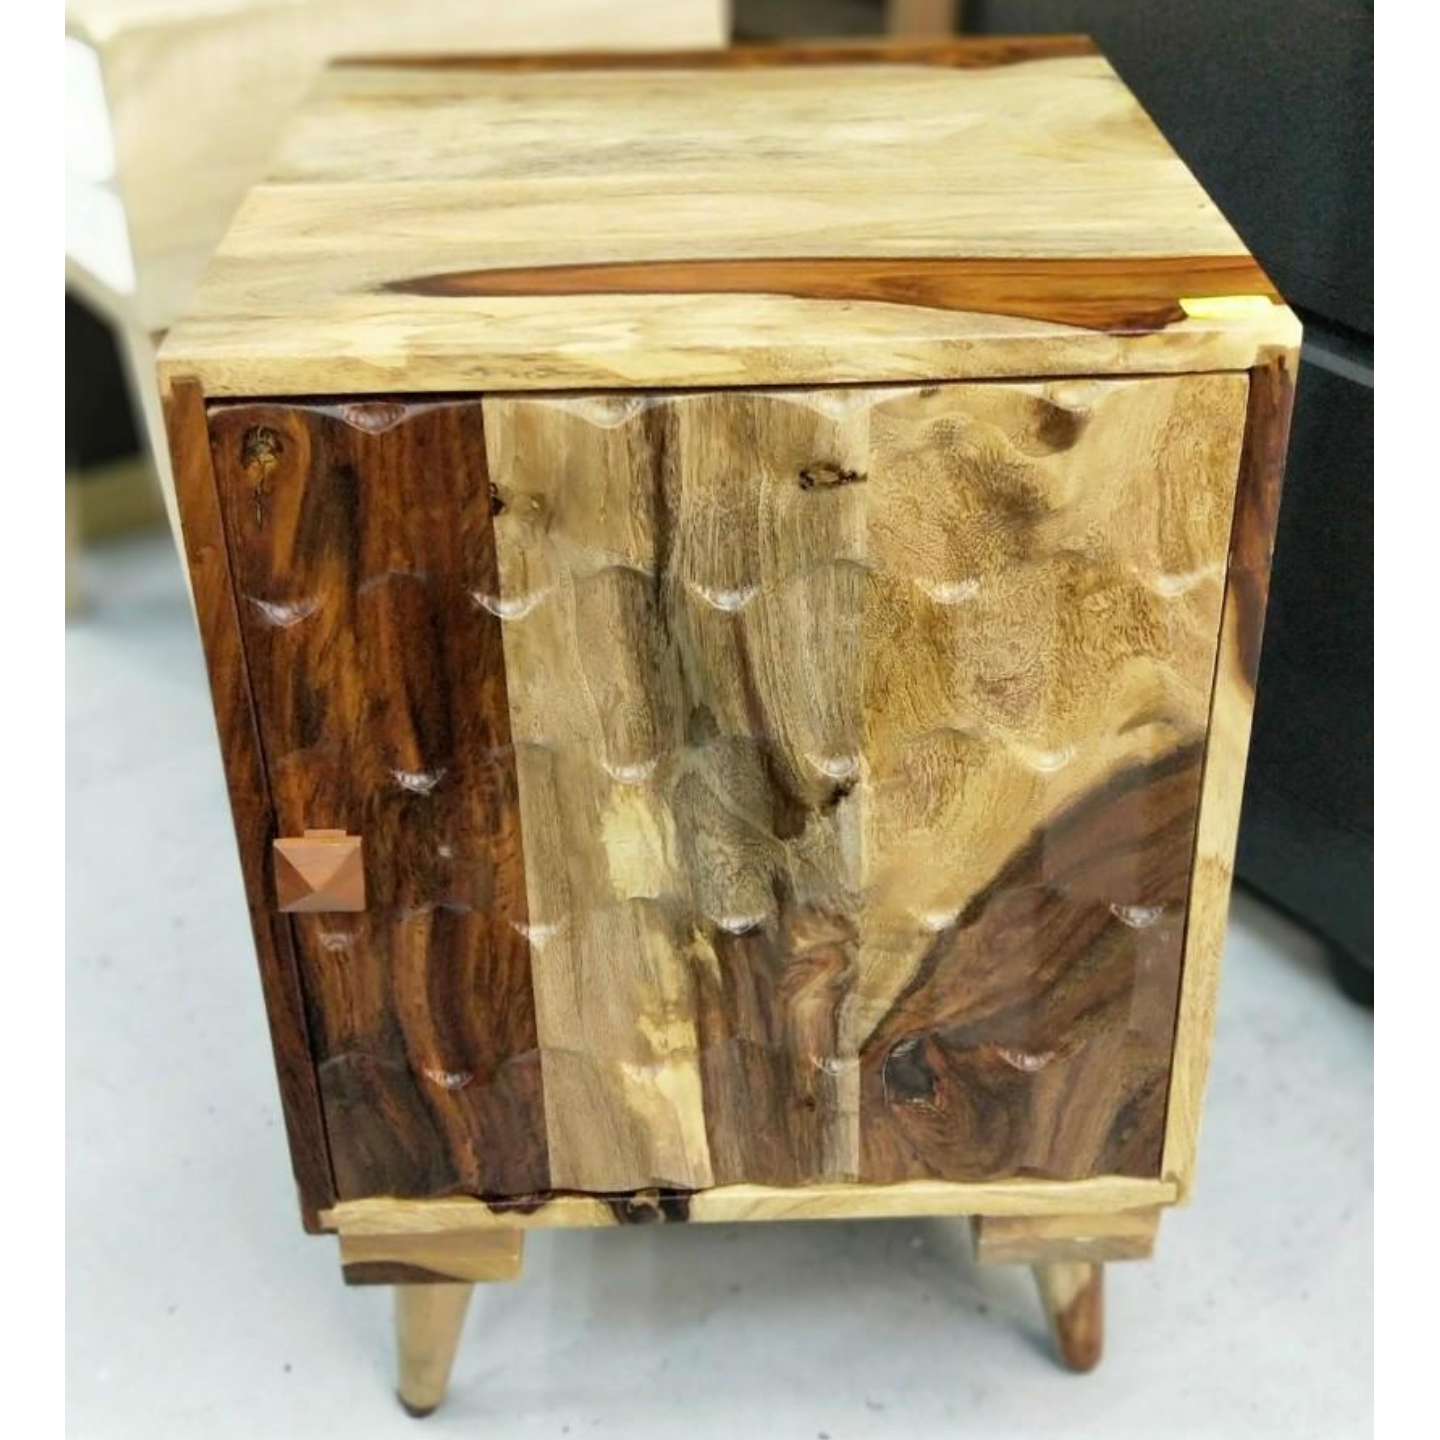 ERVIN INDUSTRI Series Side Table